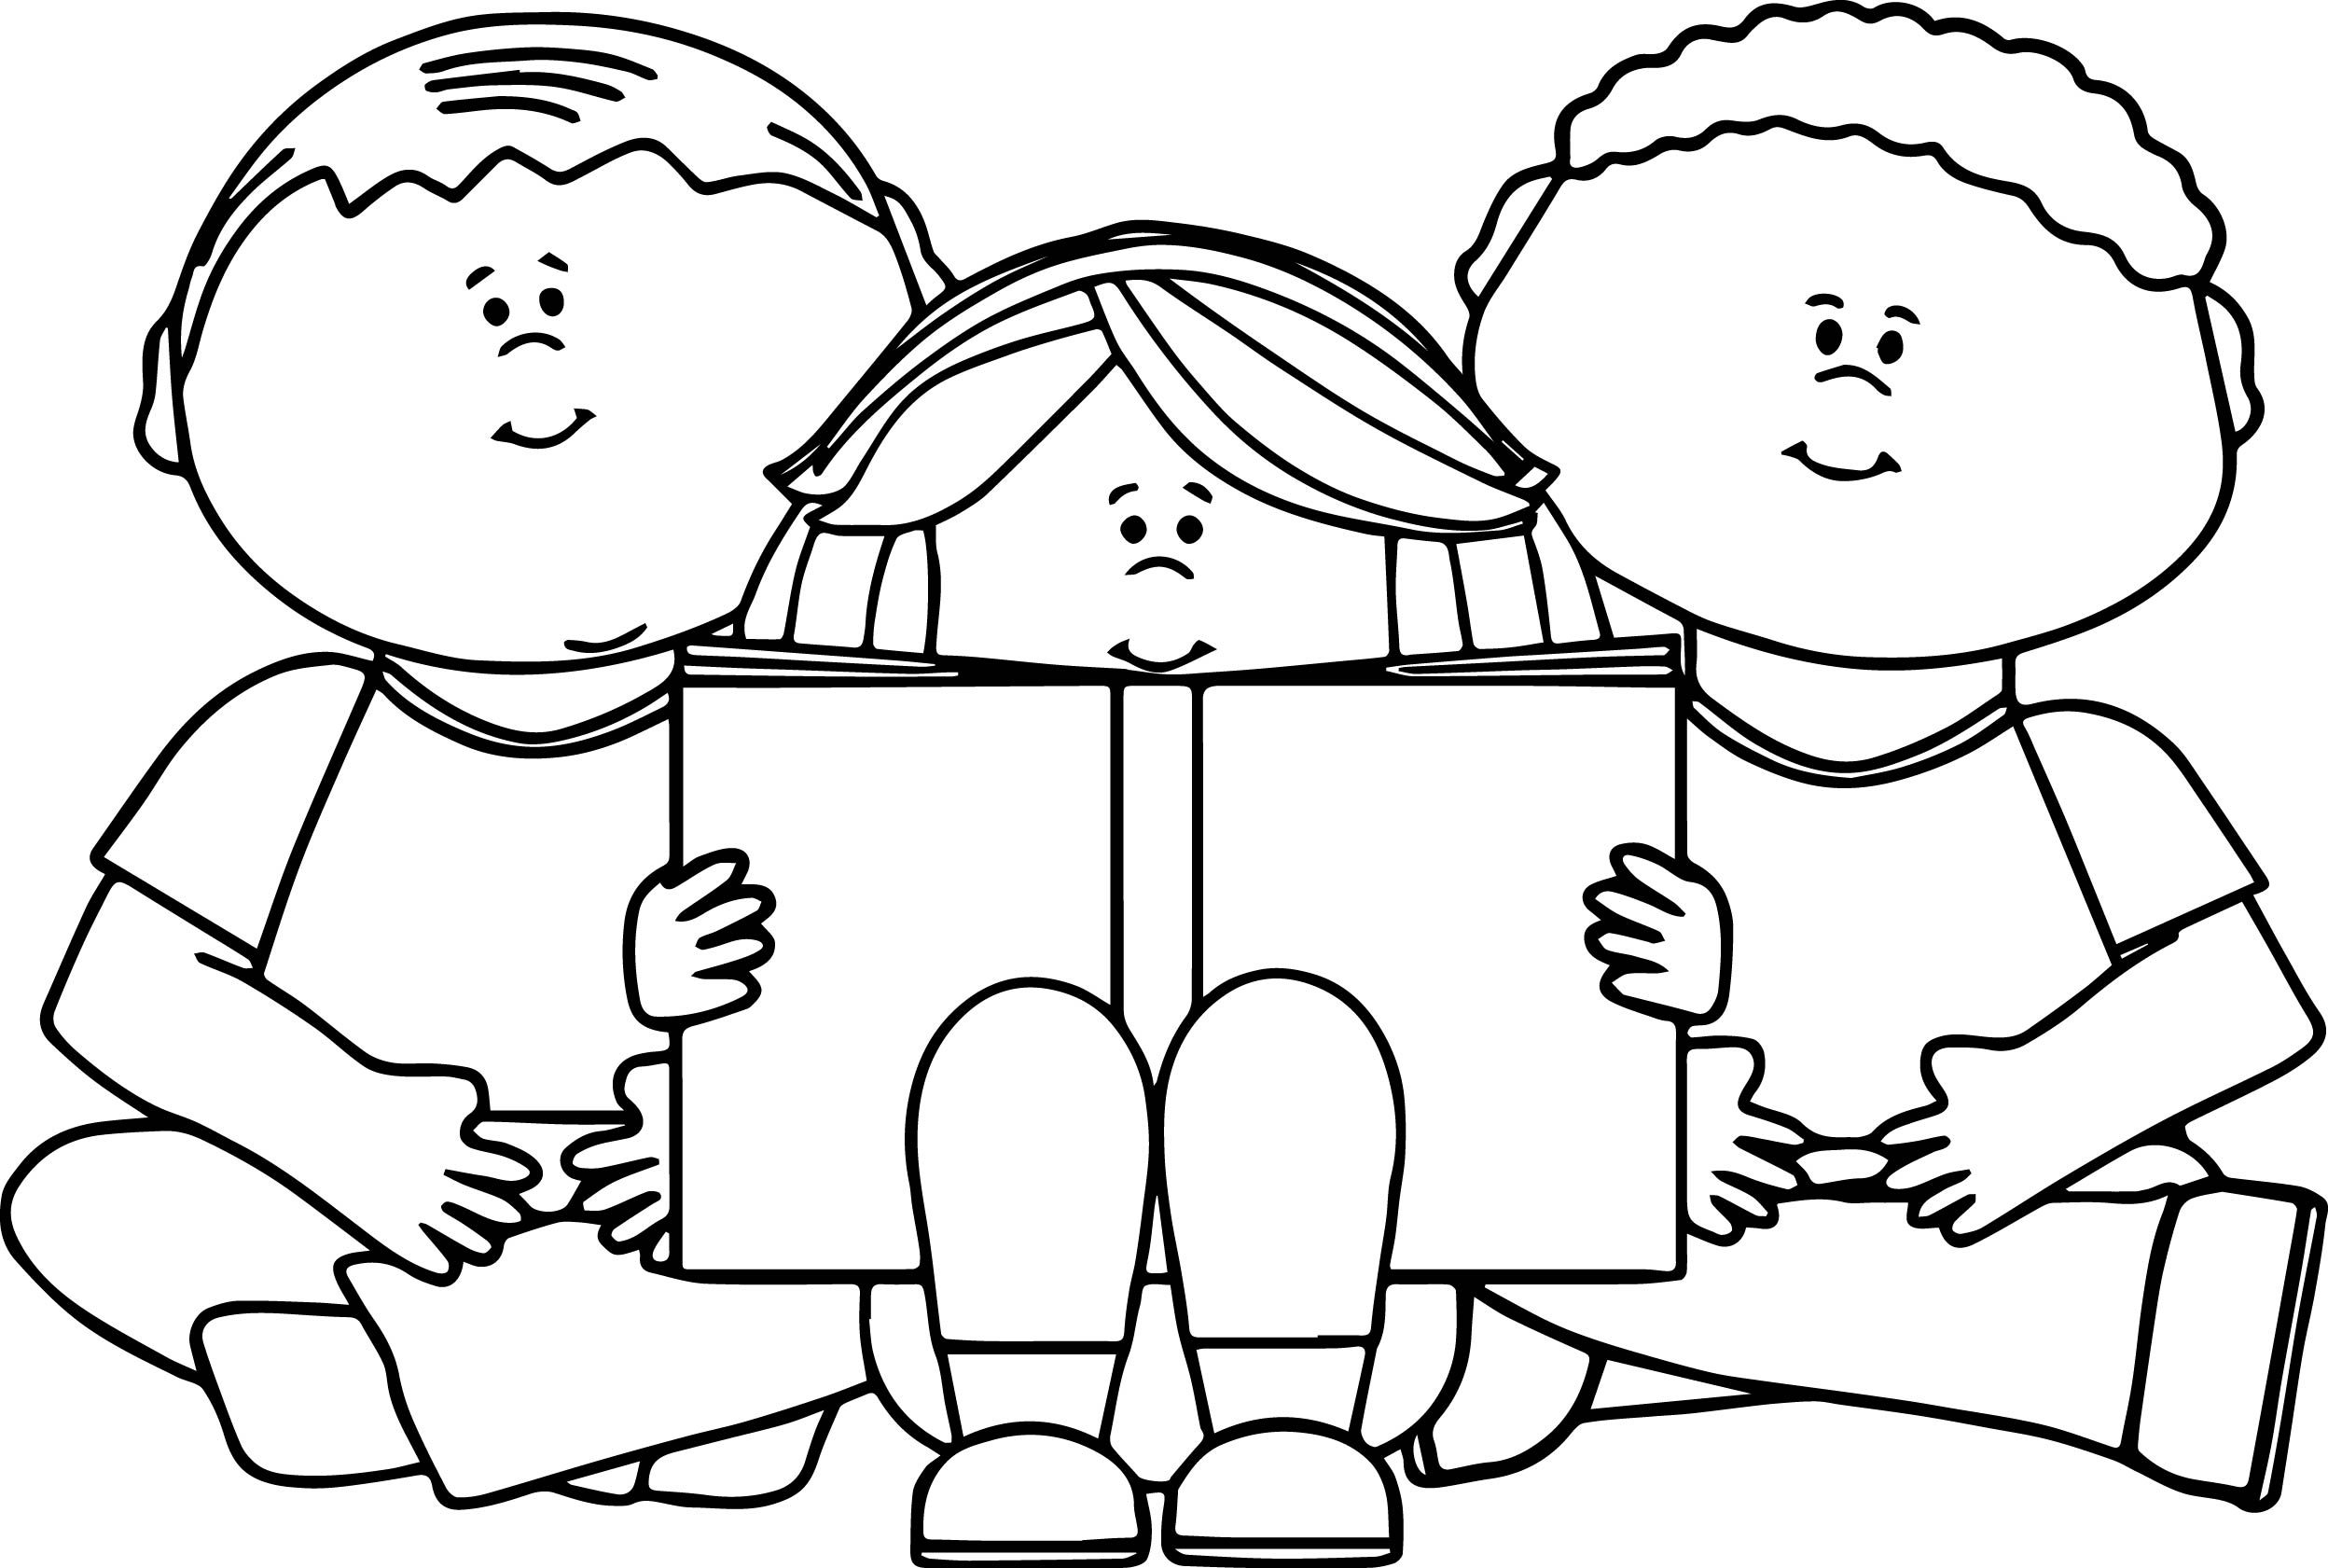 Kids Reading Book Coloring Page | Wecoloringpage